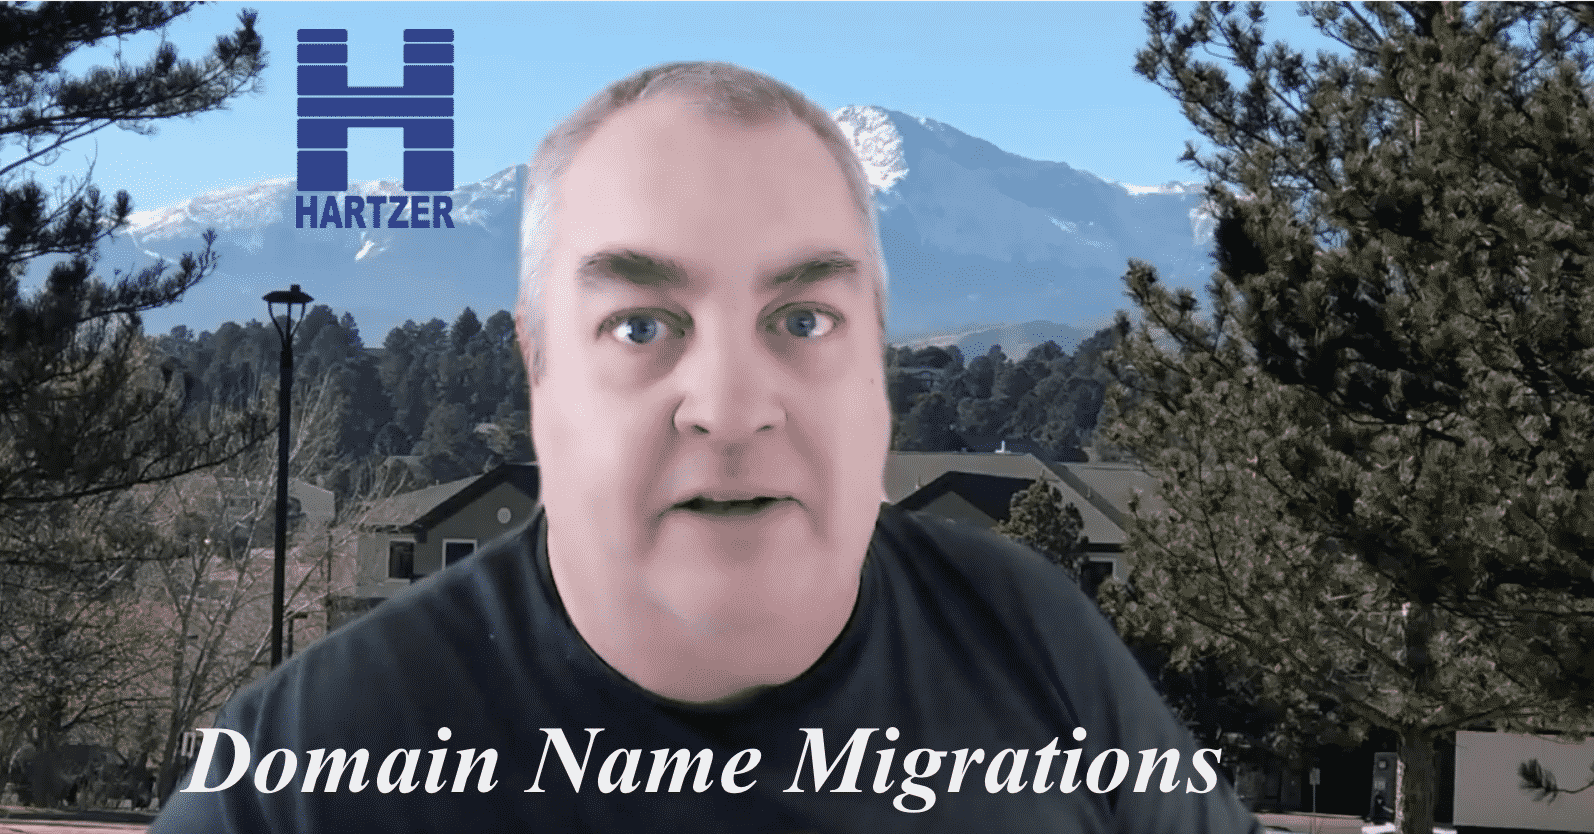 domain name migrations with Bill Hartzer